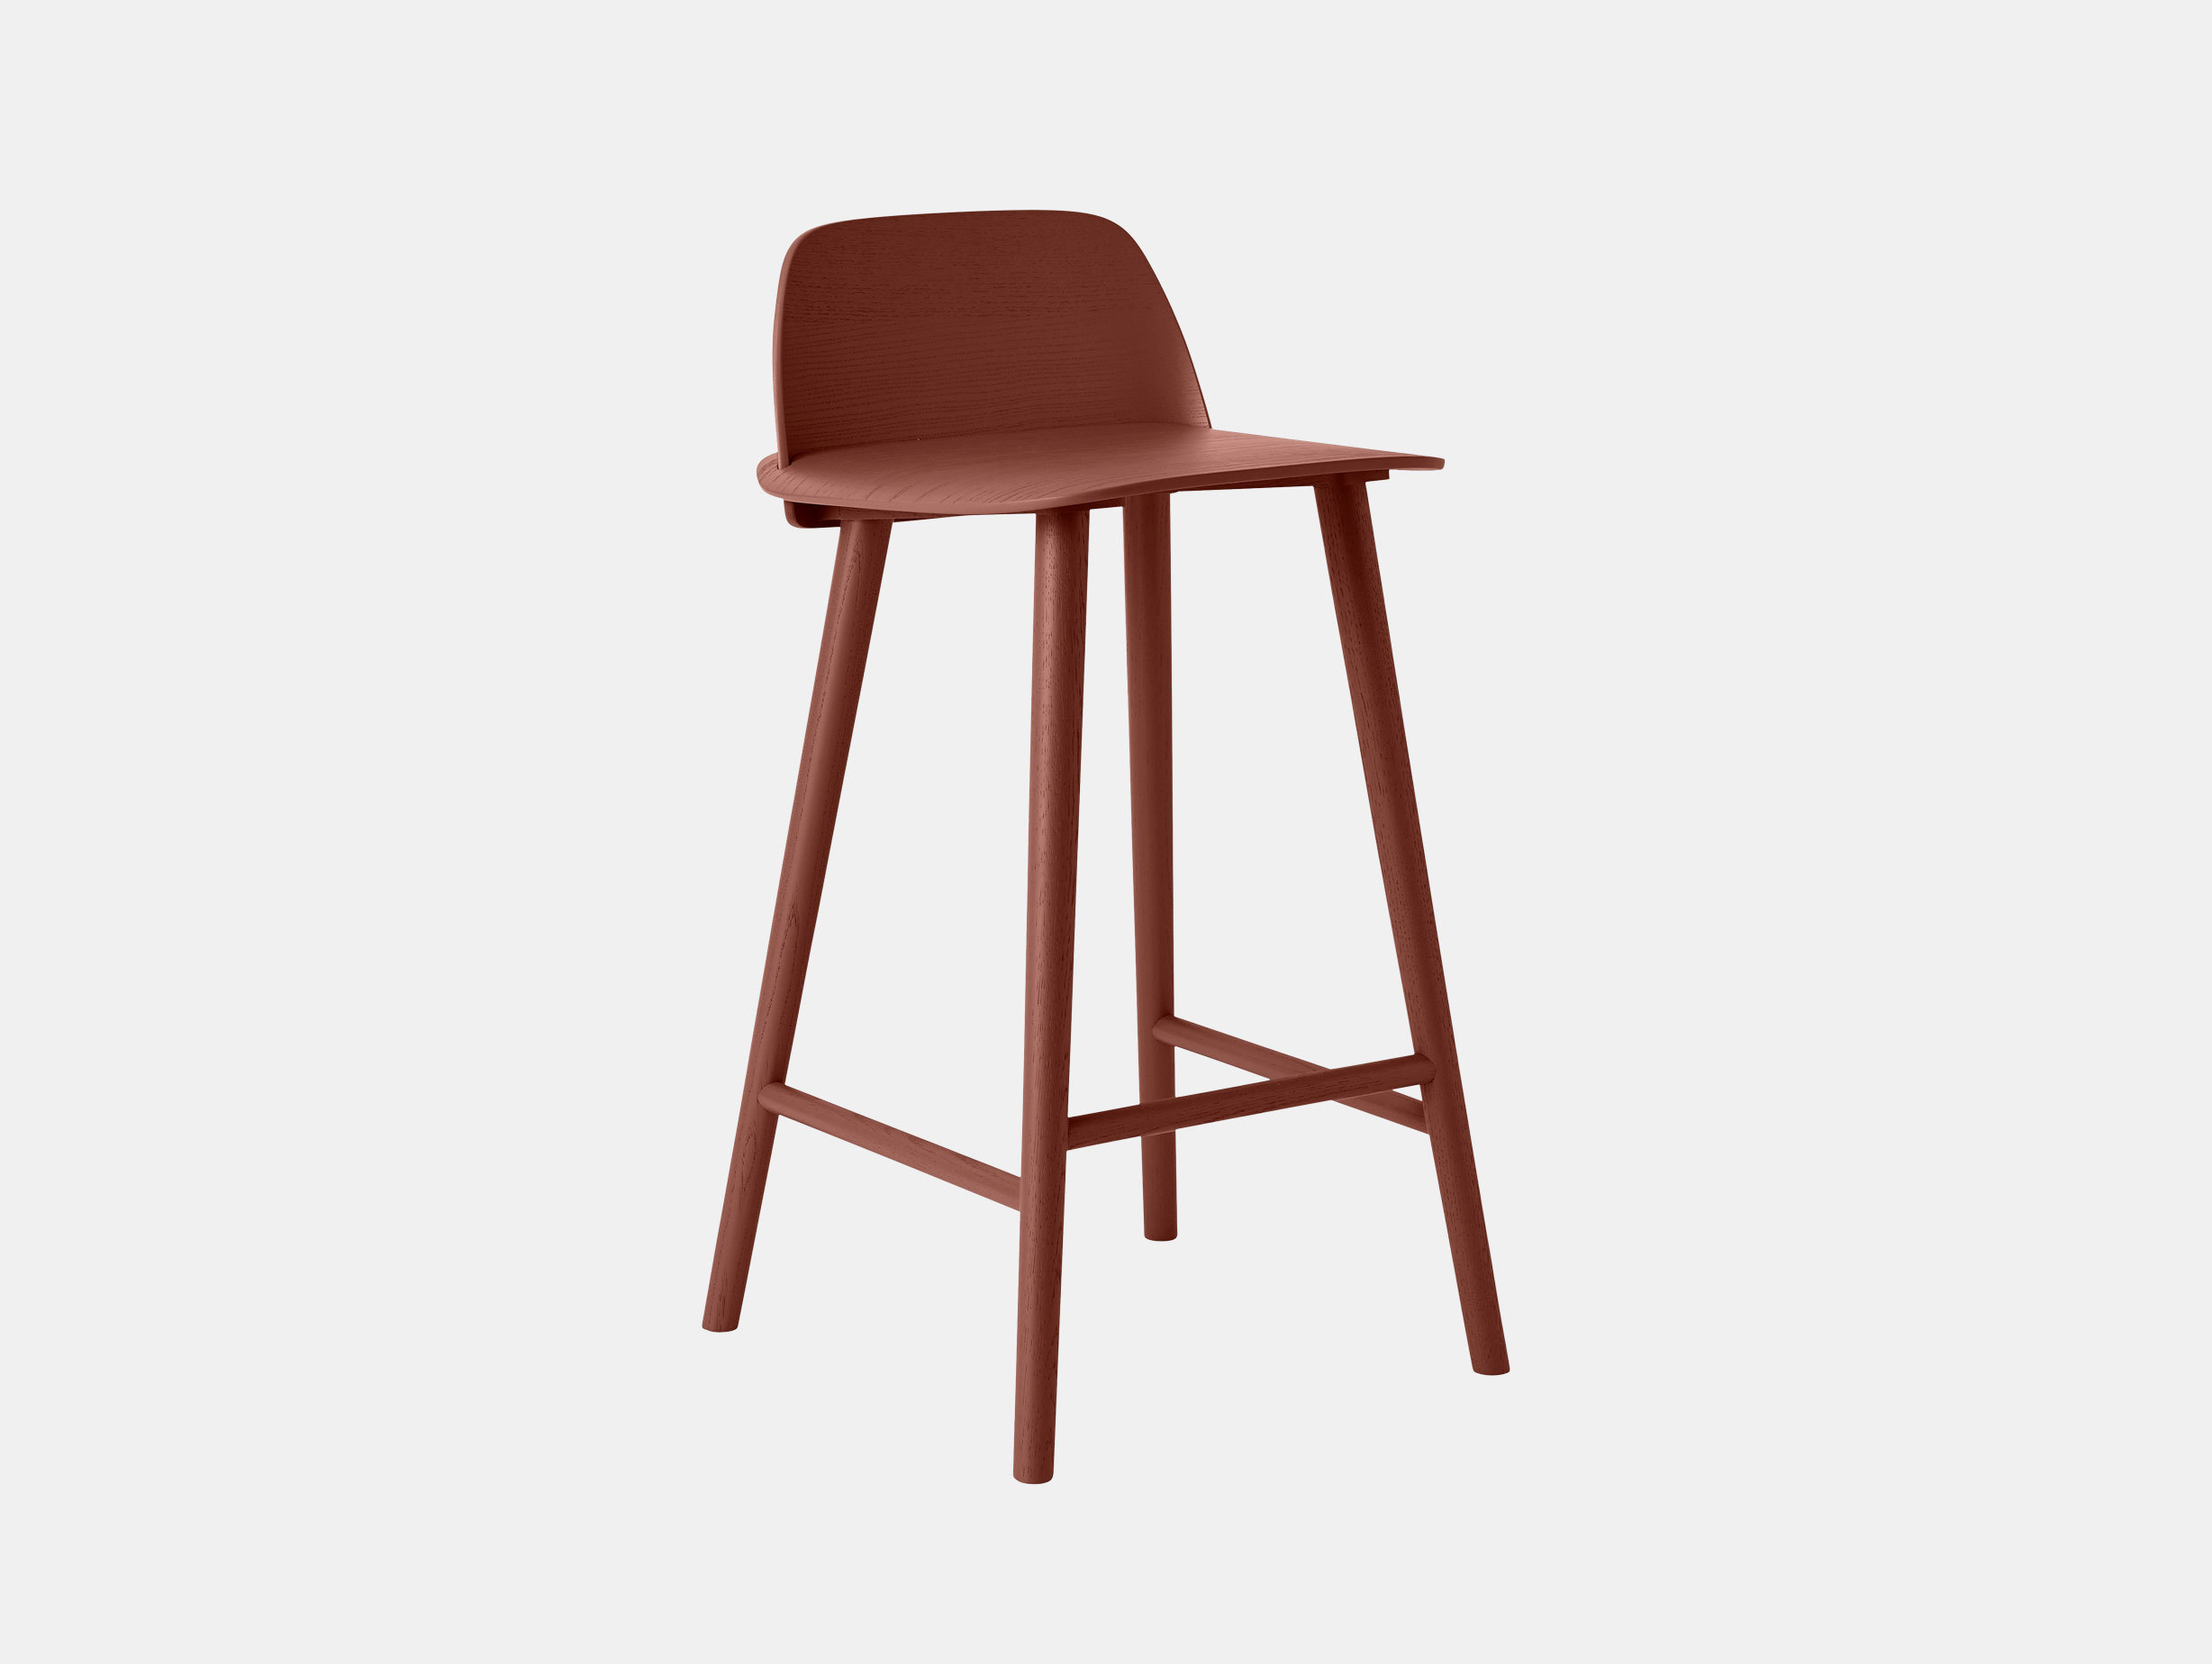 Nerd Bar Stool image 8